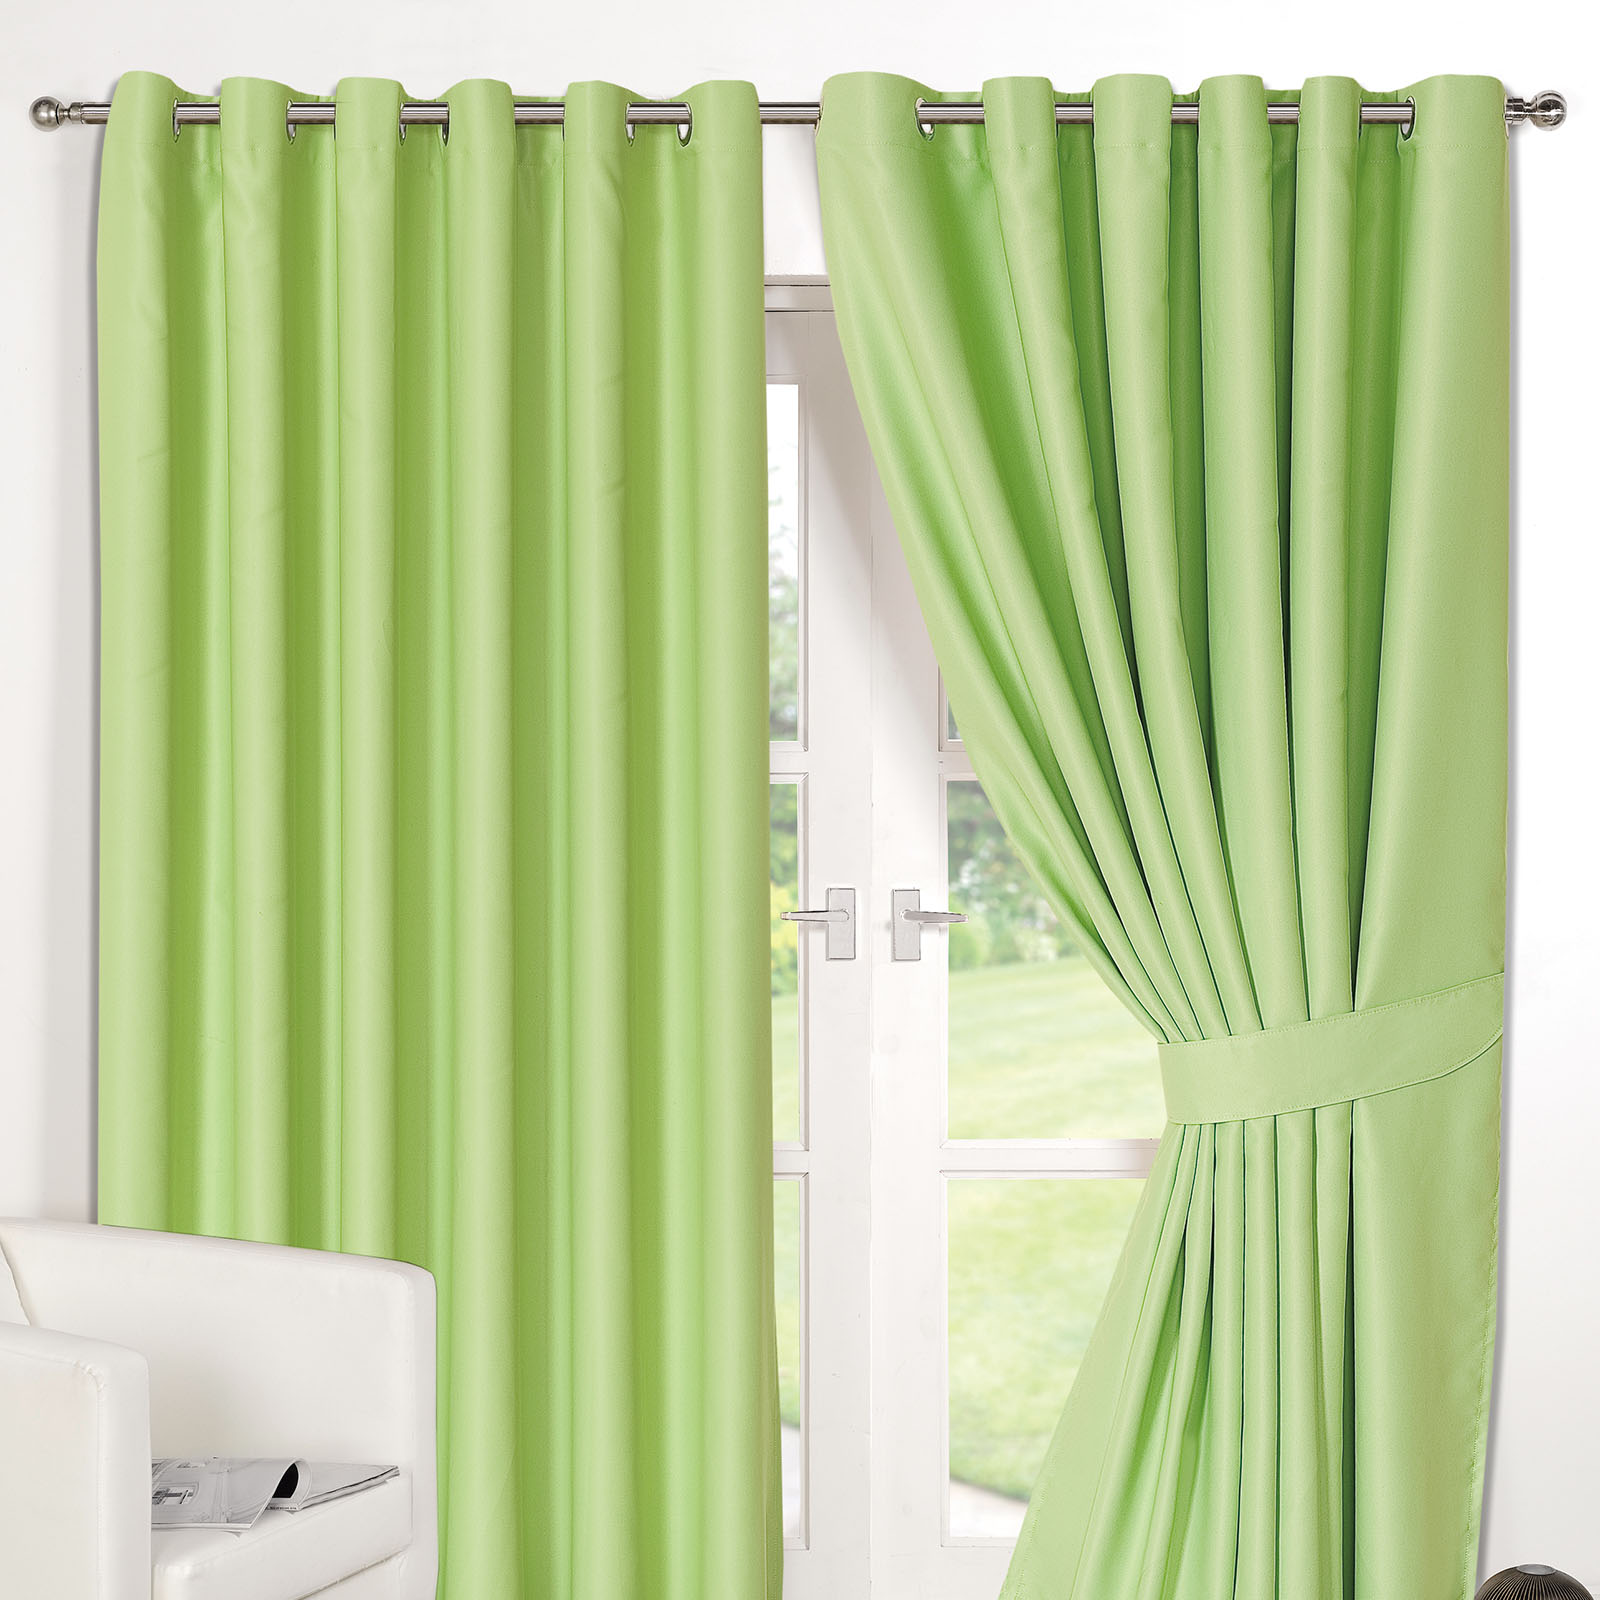 curtains curtain product hanover aqua made eyelet ready online readymade